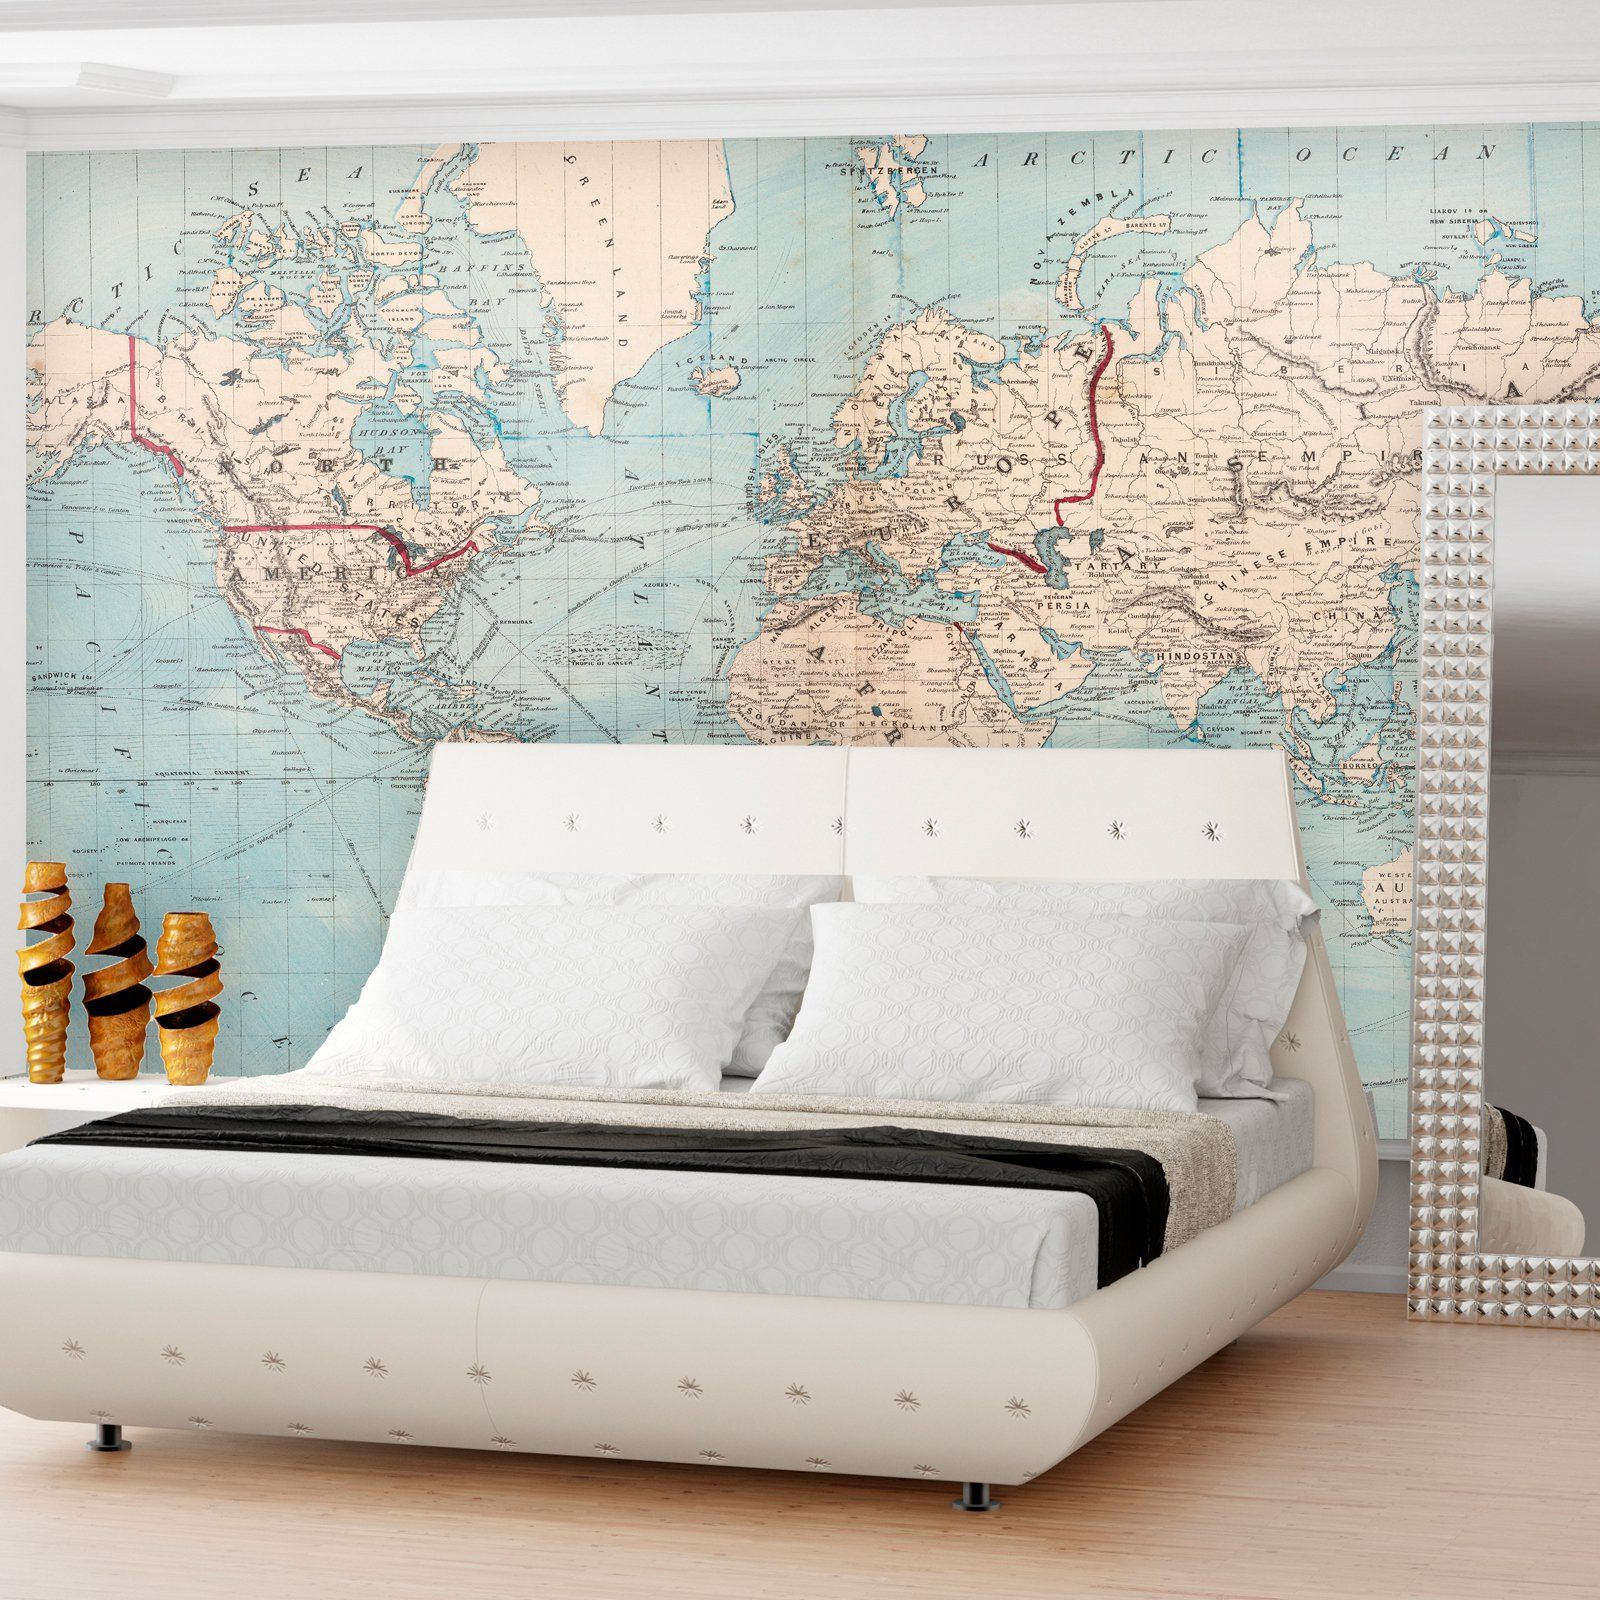 Have to have it swag paper world map 1876 shipping routes self swag paper world map 1876 shipping routes self adhesive wallpaper gumiabroncs Gallery